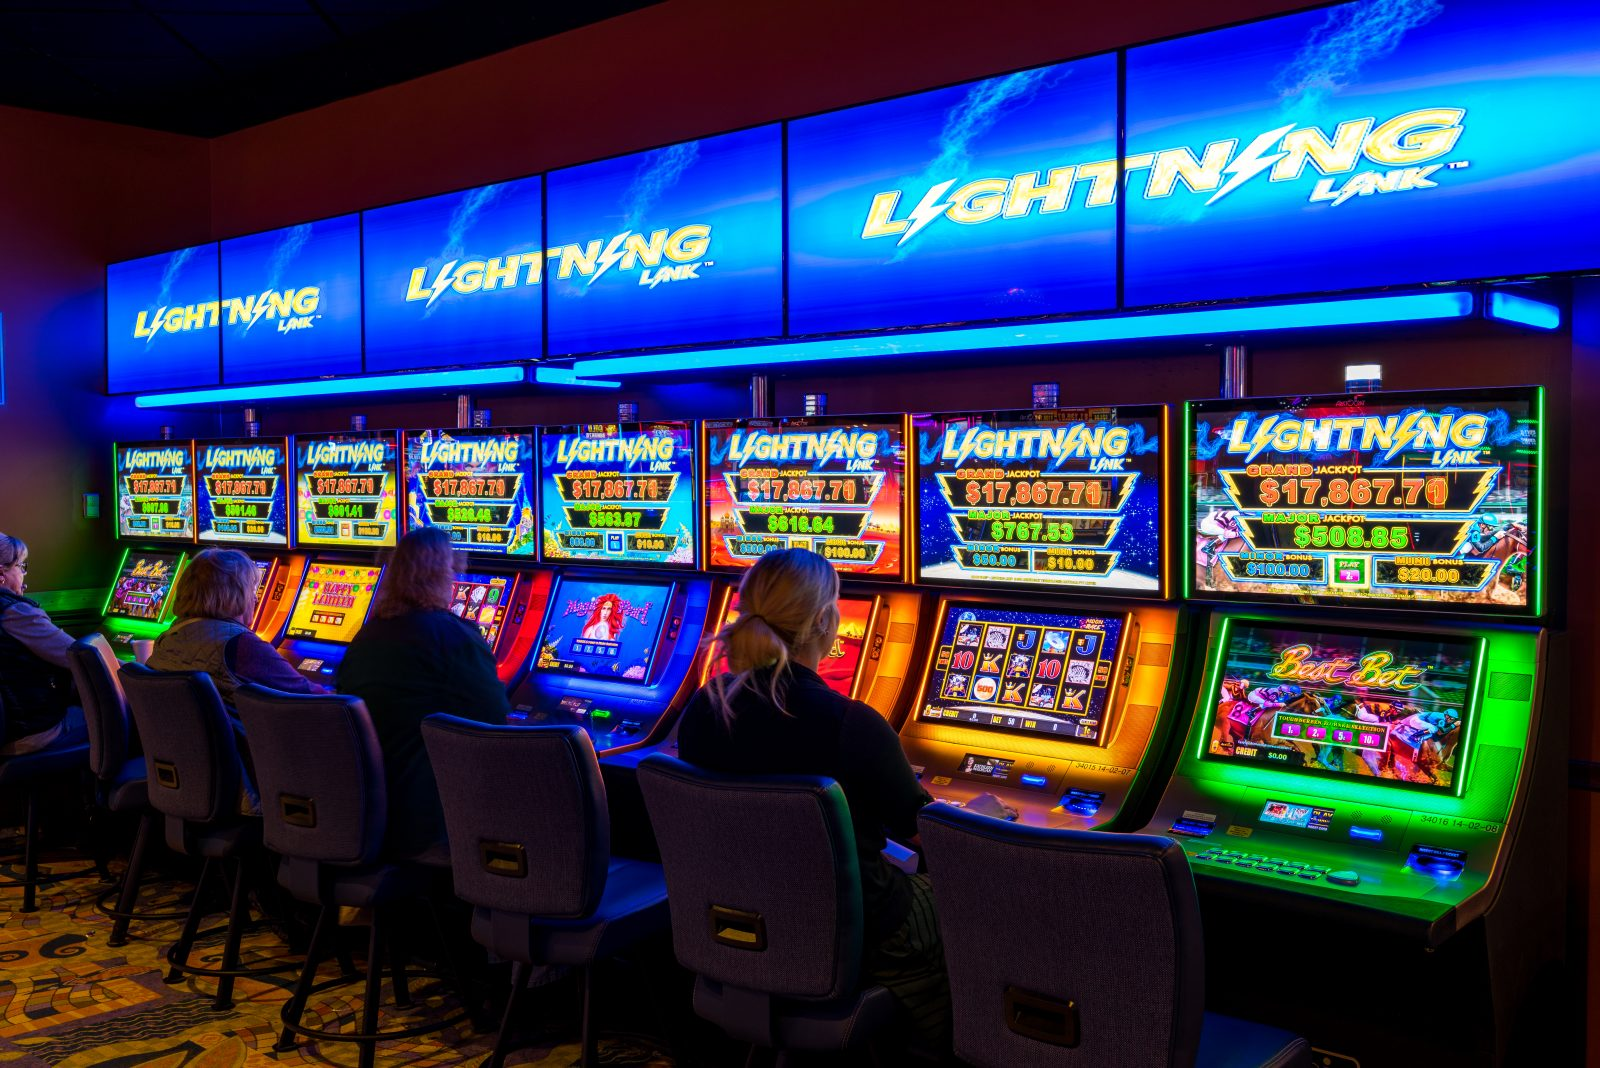 Island Resort and Casino - Harris, Michigan - Bus Tours Magazine